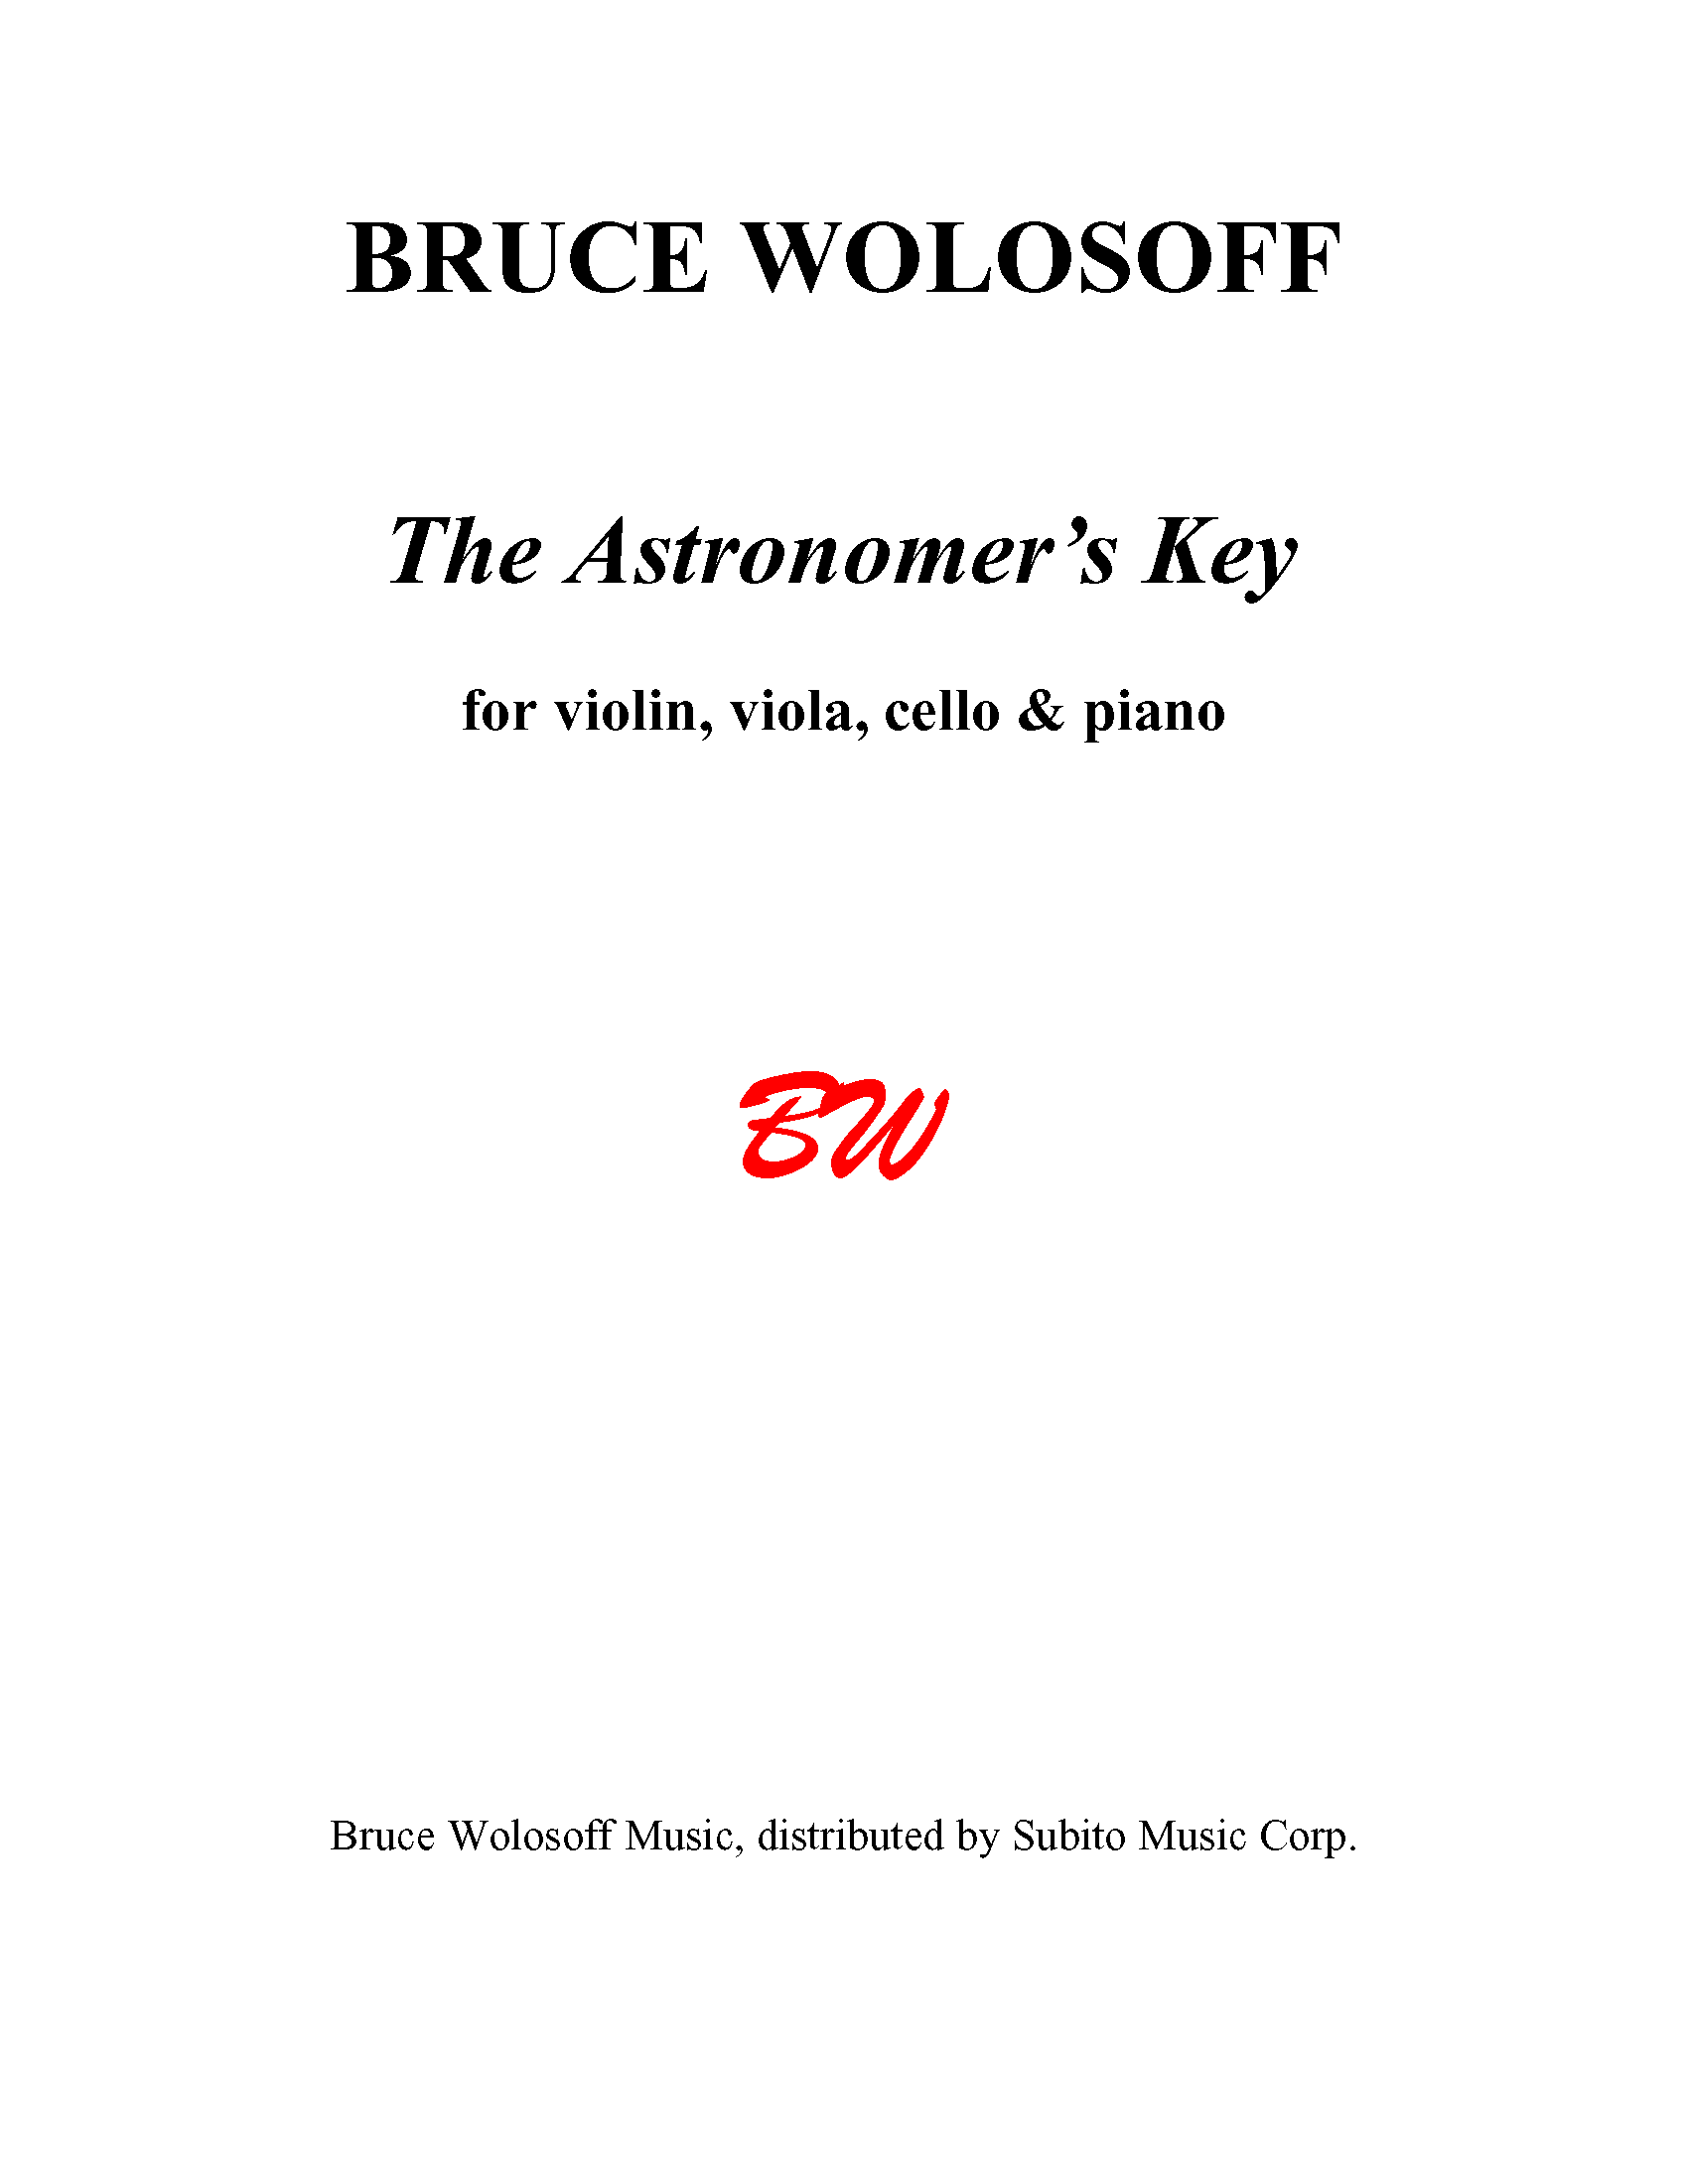 The Astronomer's Key for Violin, Viola, Violoncello & Piano